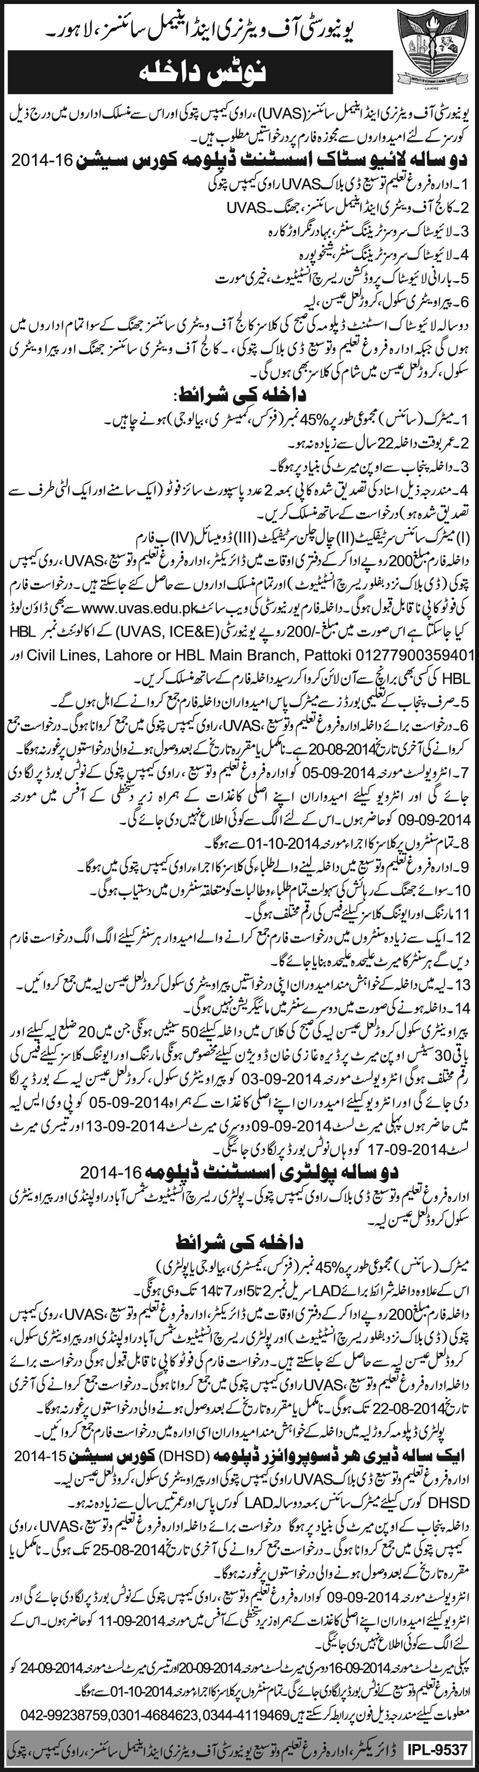 University of Veterinary and Animal Sciences Lahore Admission Notice 2014